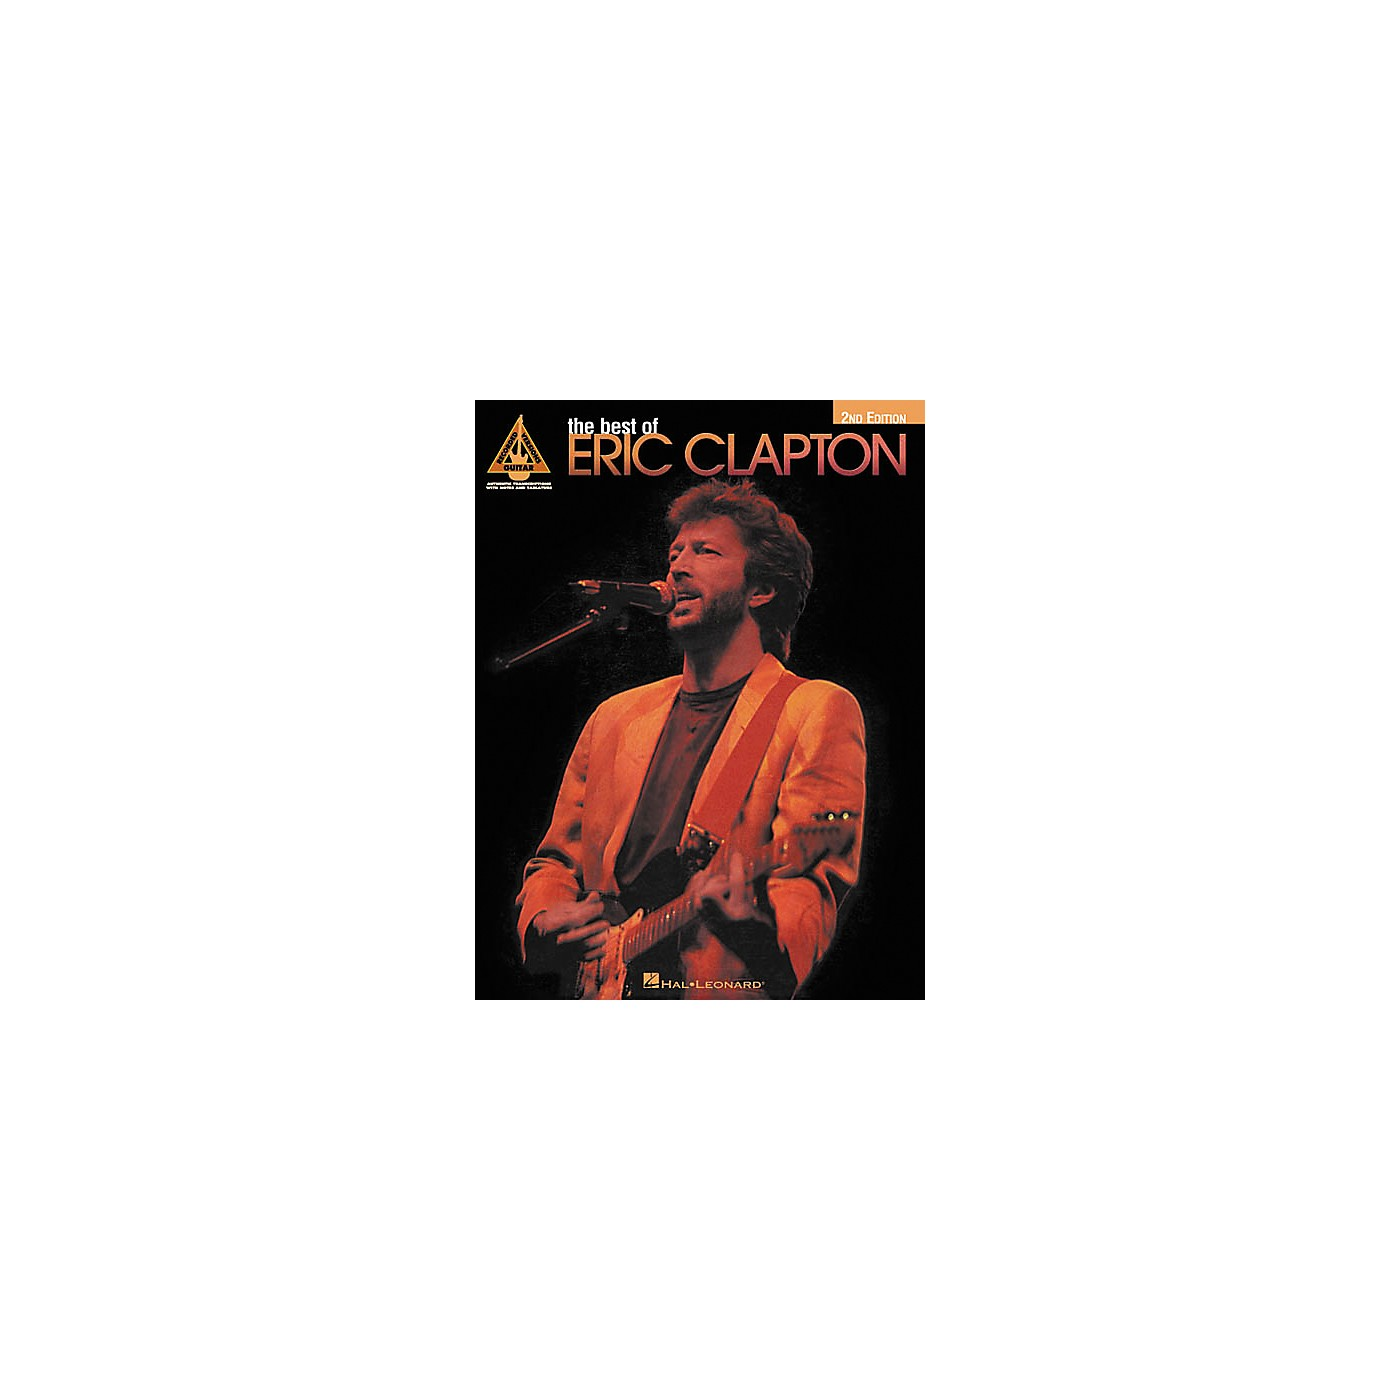 Hal Leonard The Best of Eric Clapton 2nd Edition Guitar Tab Songbook thumbnail